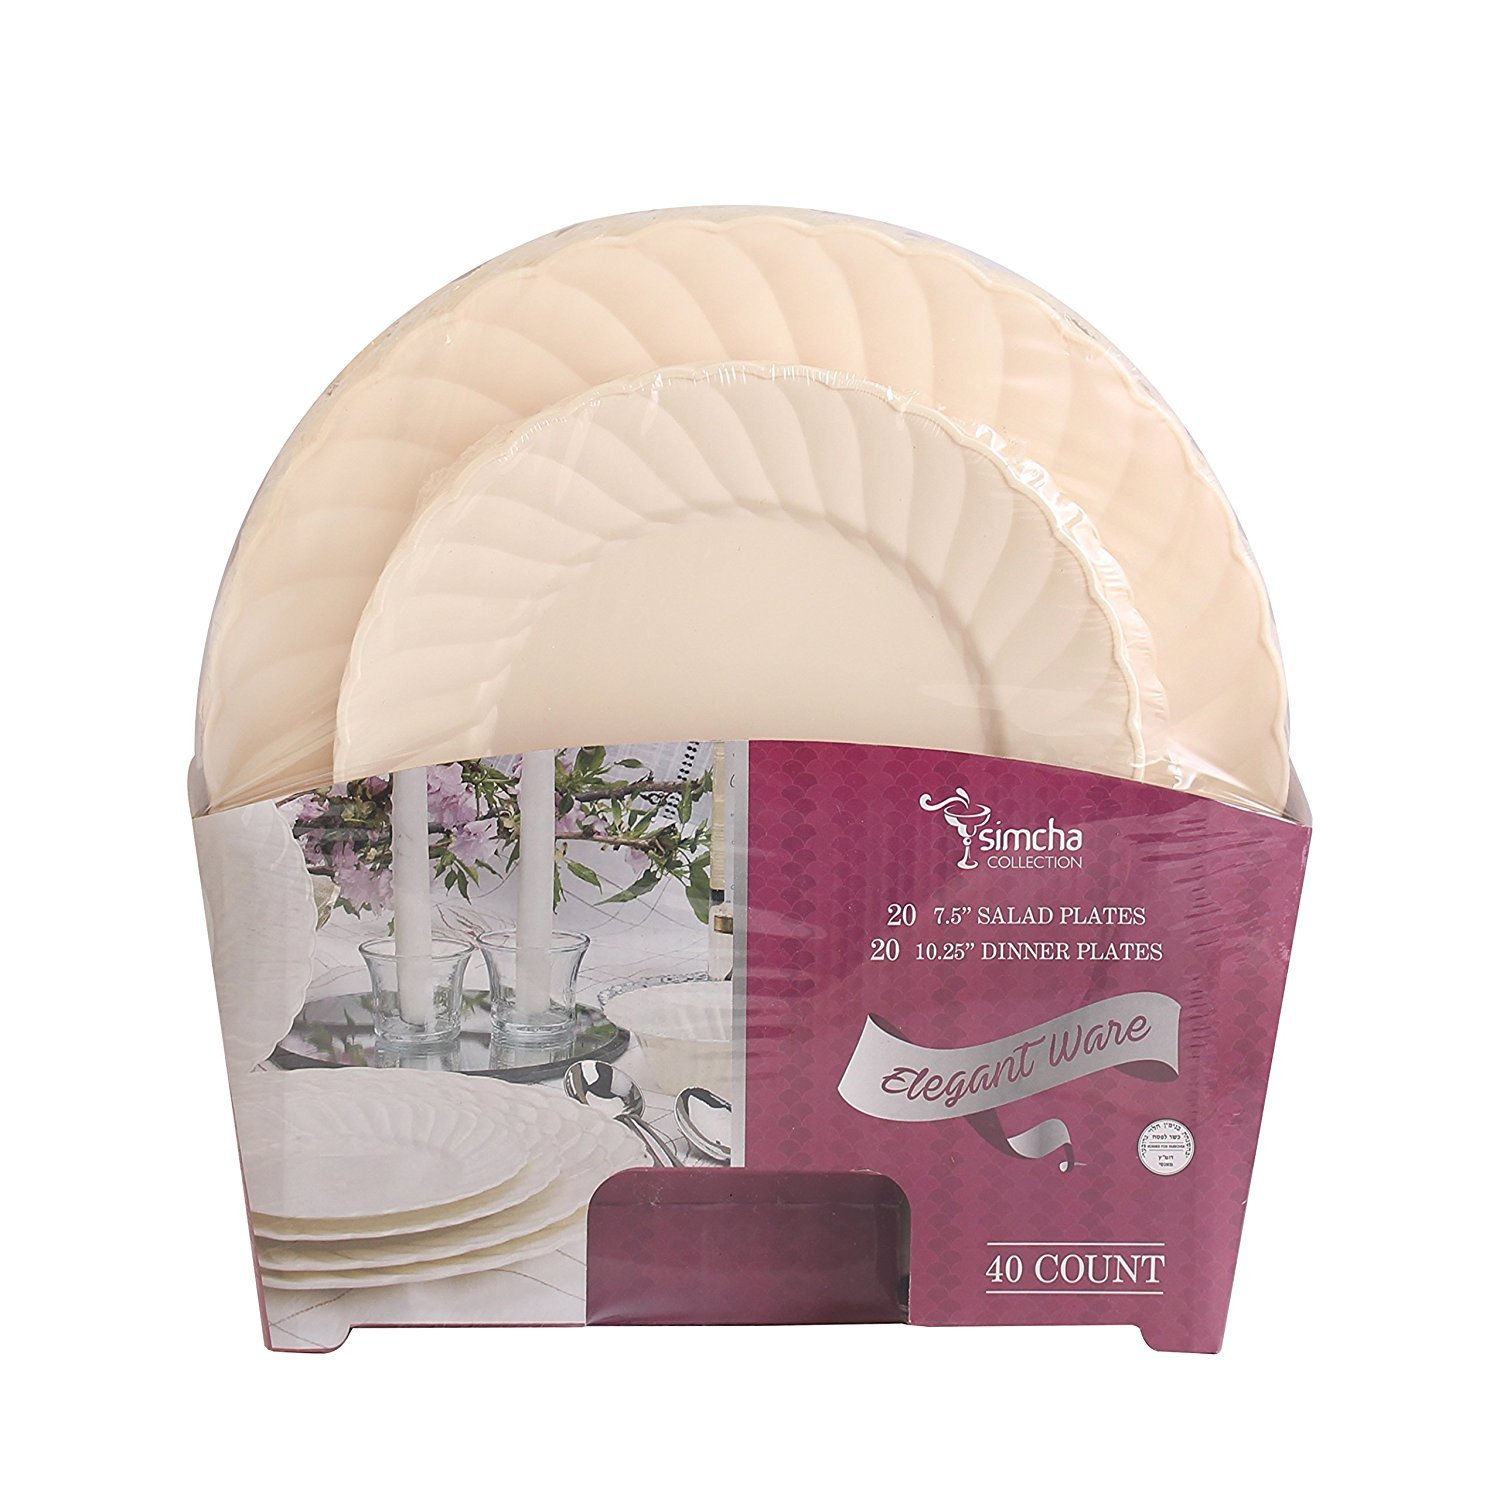 Amazon.com Disposable Plastic Plates Combo | Premium Quality White Dinnerware Set With Swirl Border | Excellent for Weddings Bridal Showers ...  sc 1 st  Amazon.com & Amazon.com: Disposable Plastic Plates Combo | Premium Quality White ...